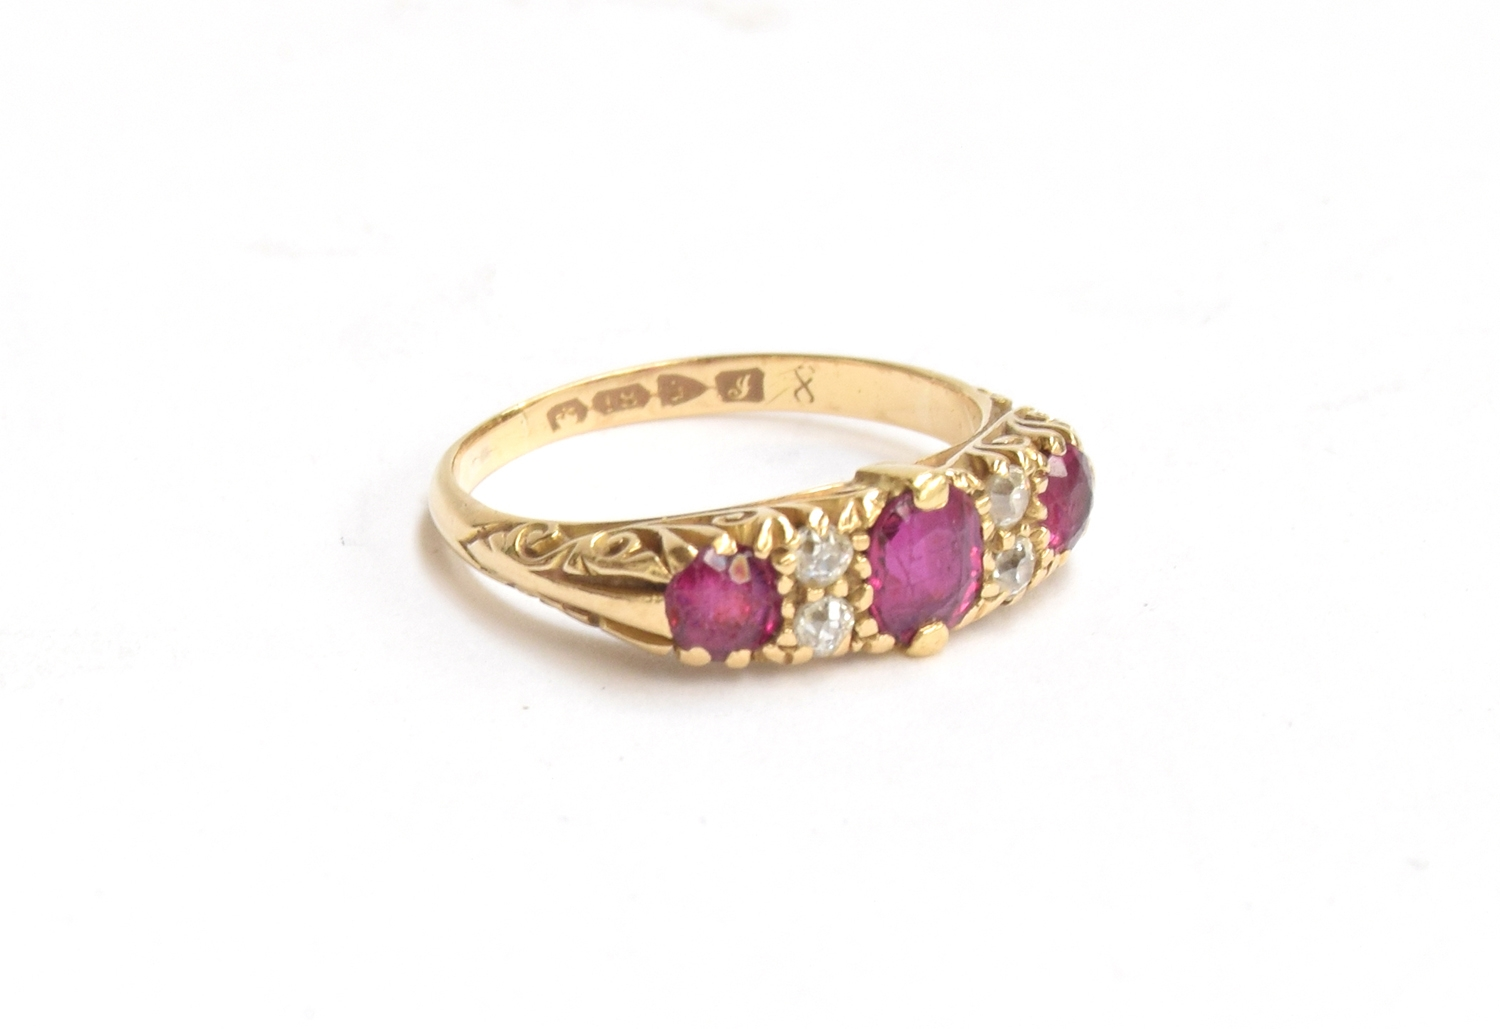 An 18ct gold dress ring set with 3 rubies and 4 small diamonds on a decorated shank, gross weight